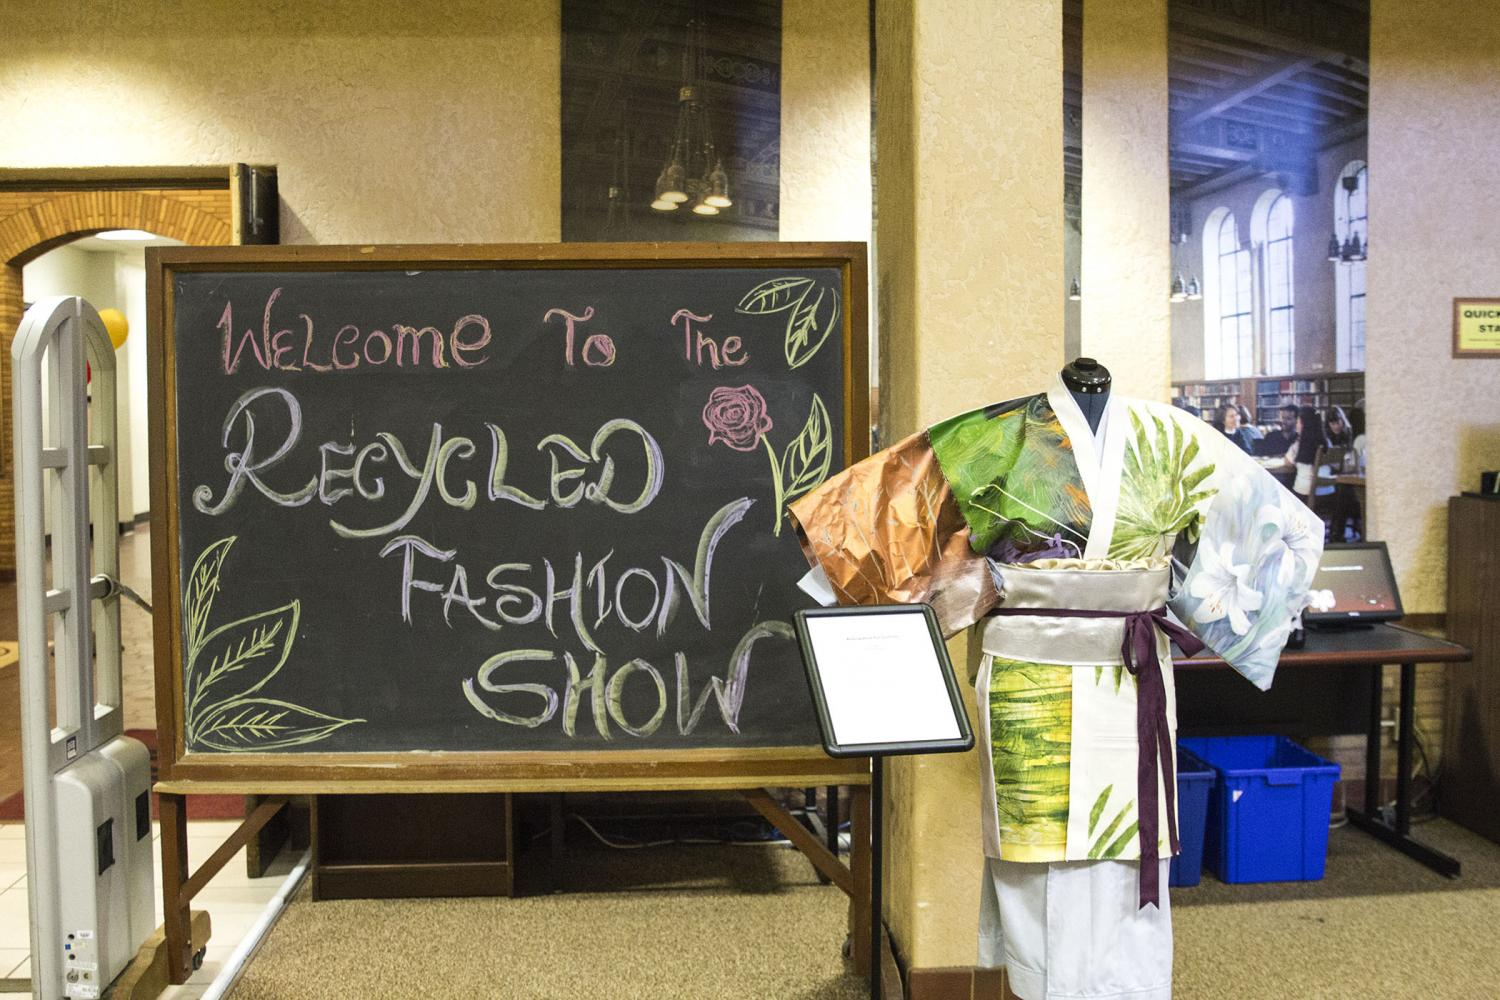 A+sign+welcomes+guests+to+the+Recycled+Fashion+Show+in+the+FCC+Library+as+a+part+of+Asian+Fest+on+April+28%2C+2017.